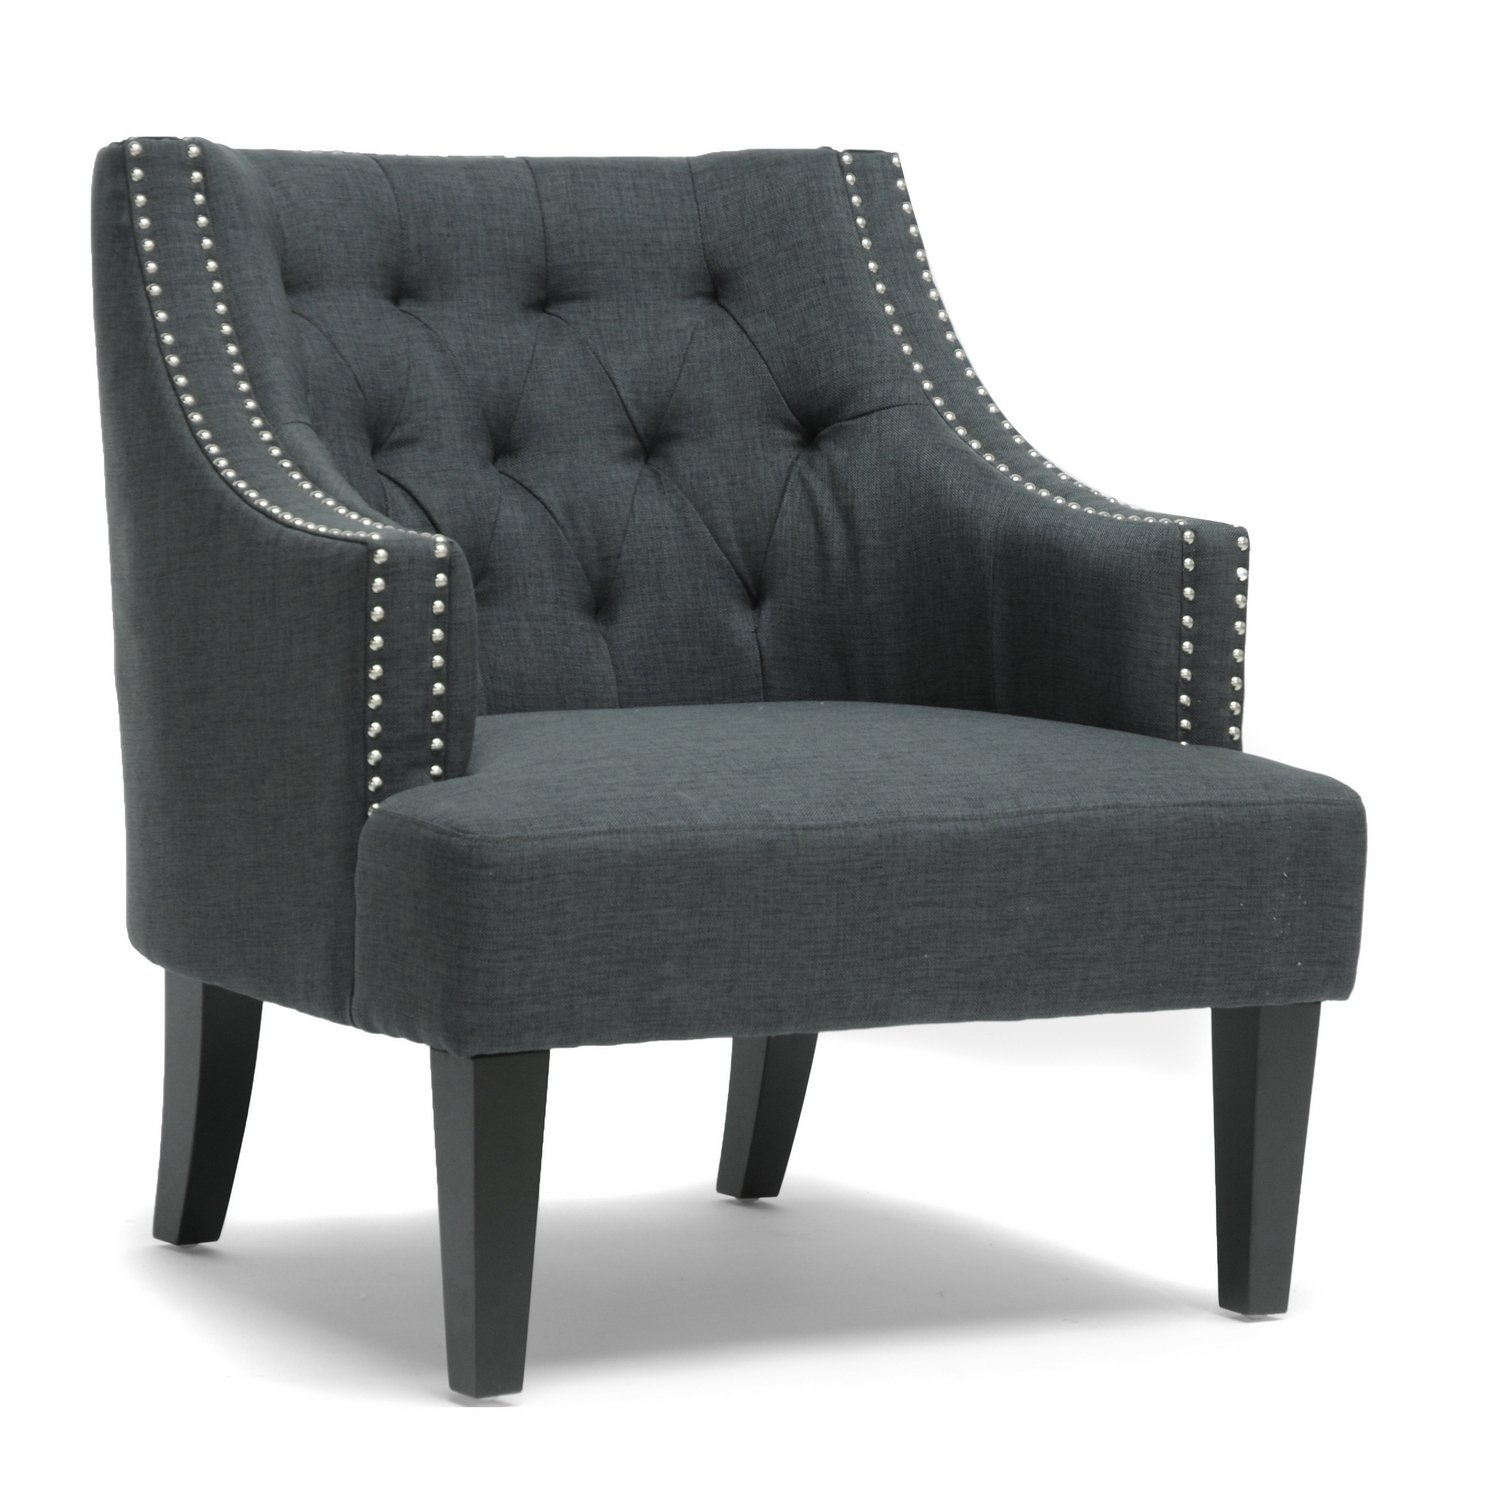 Beautiful A Source List Of More Than 20 AFFORDABLE Accent Chairs By Designer ...